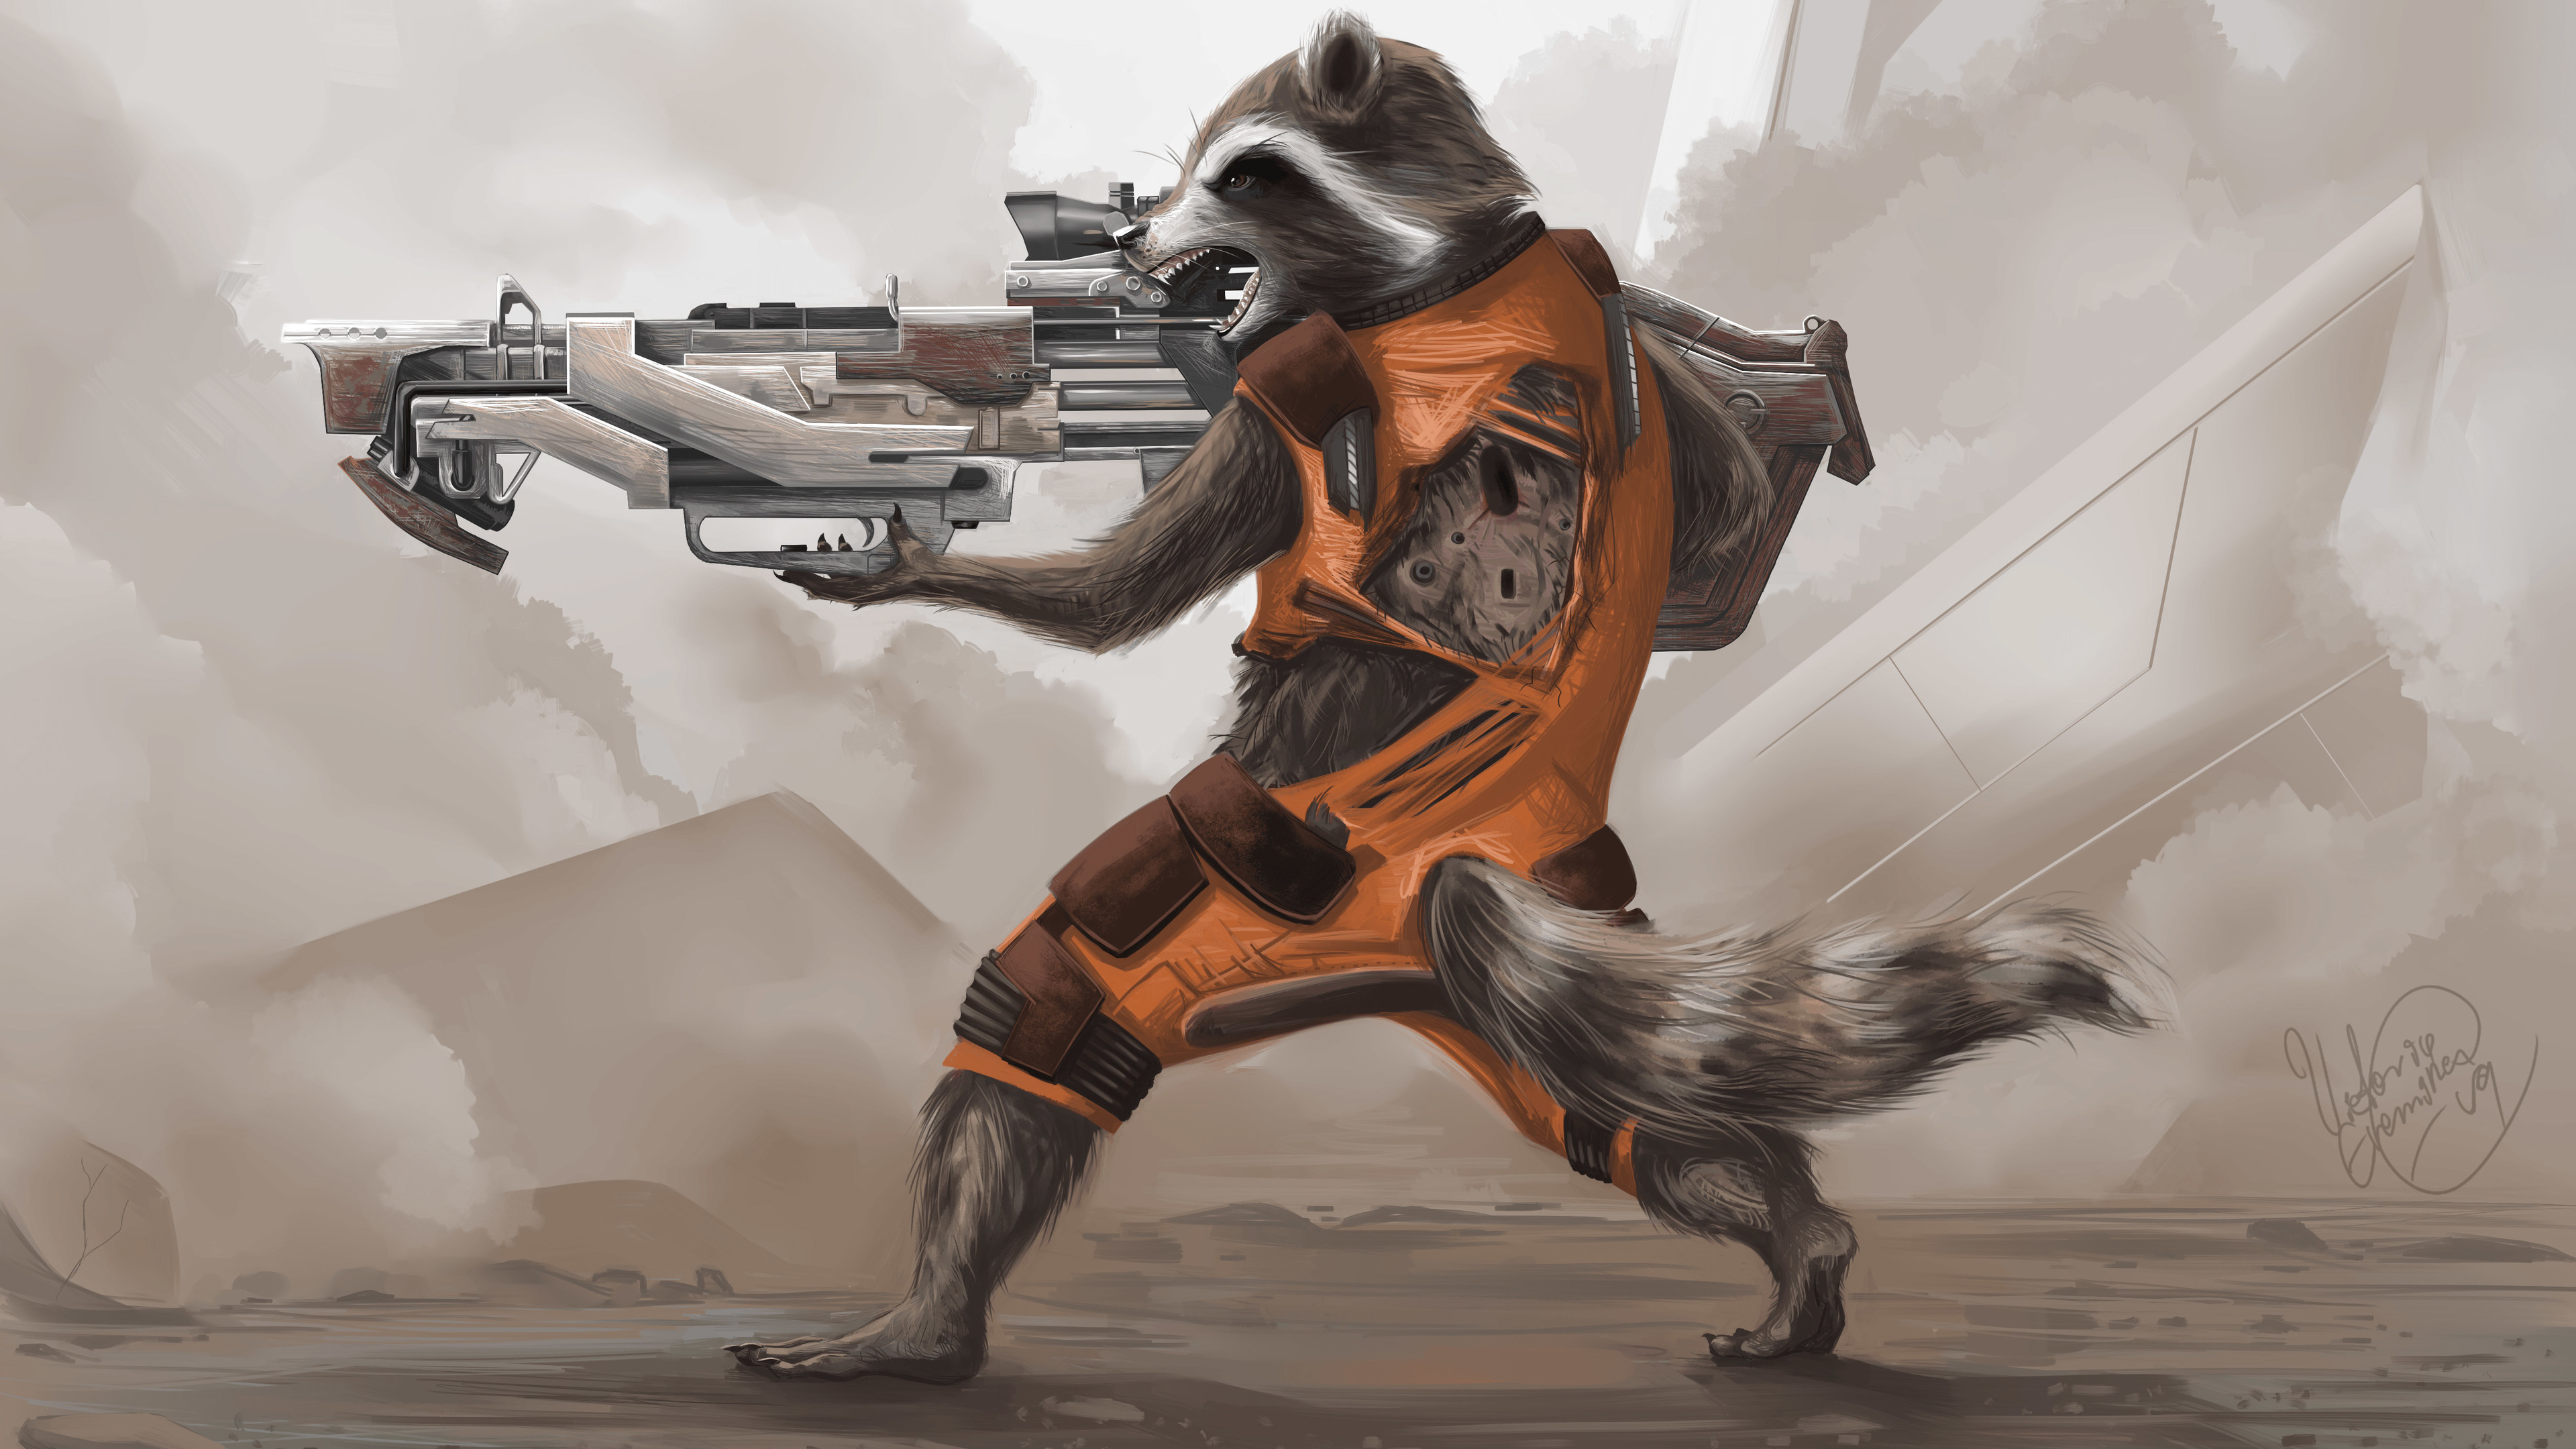 rocket raccoon artwork 4k 1540749141 - Rocket Raccoon Artwork 4k - rocket raccoon wallpapers, movies wallpapers, hd-wallpapers, guardians of the galaxy wallpapers, guardians of the galaxy vol 2 wallpapers, artwork wallpapers, 4k-wallpapers, 2017 movies wallpapers